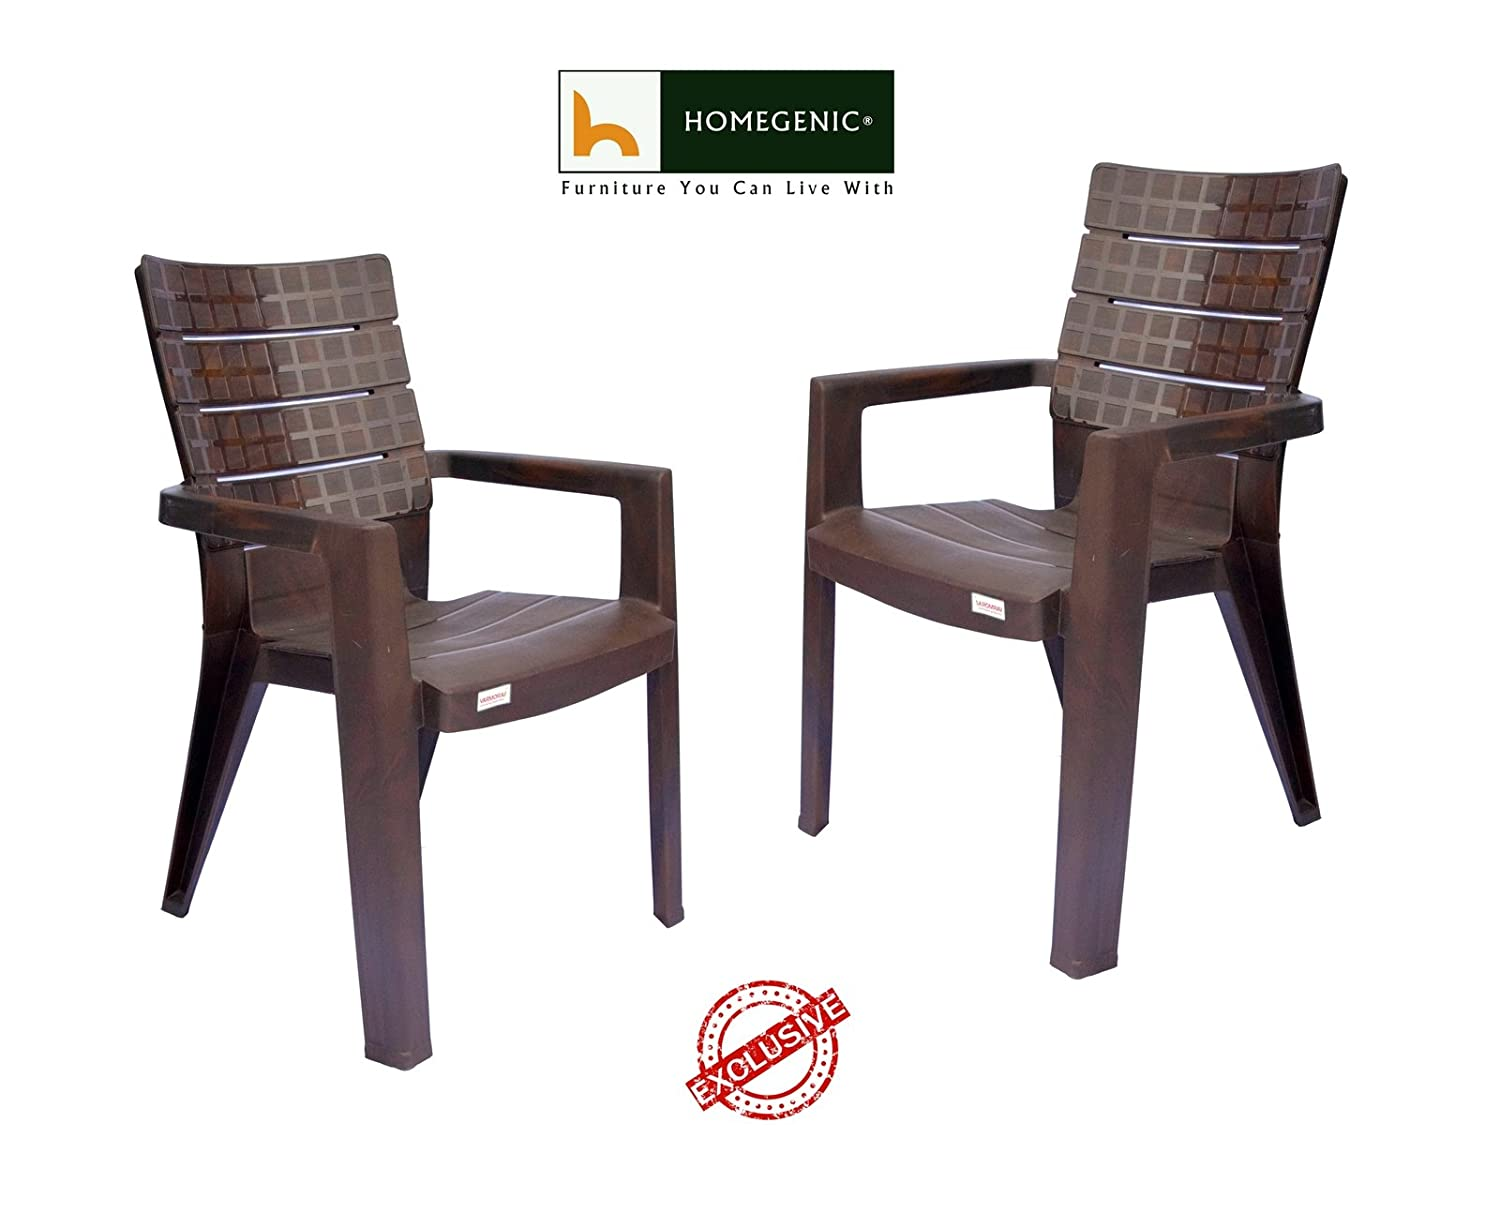 Homegenic artistic chess designer chairs matte rose wood set of 2 amazon in home kitchen